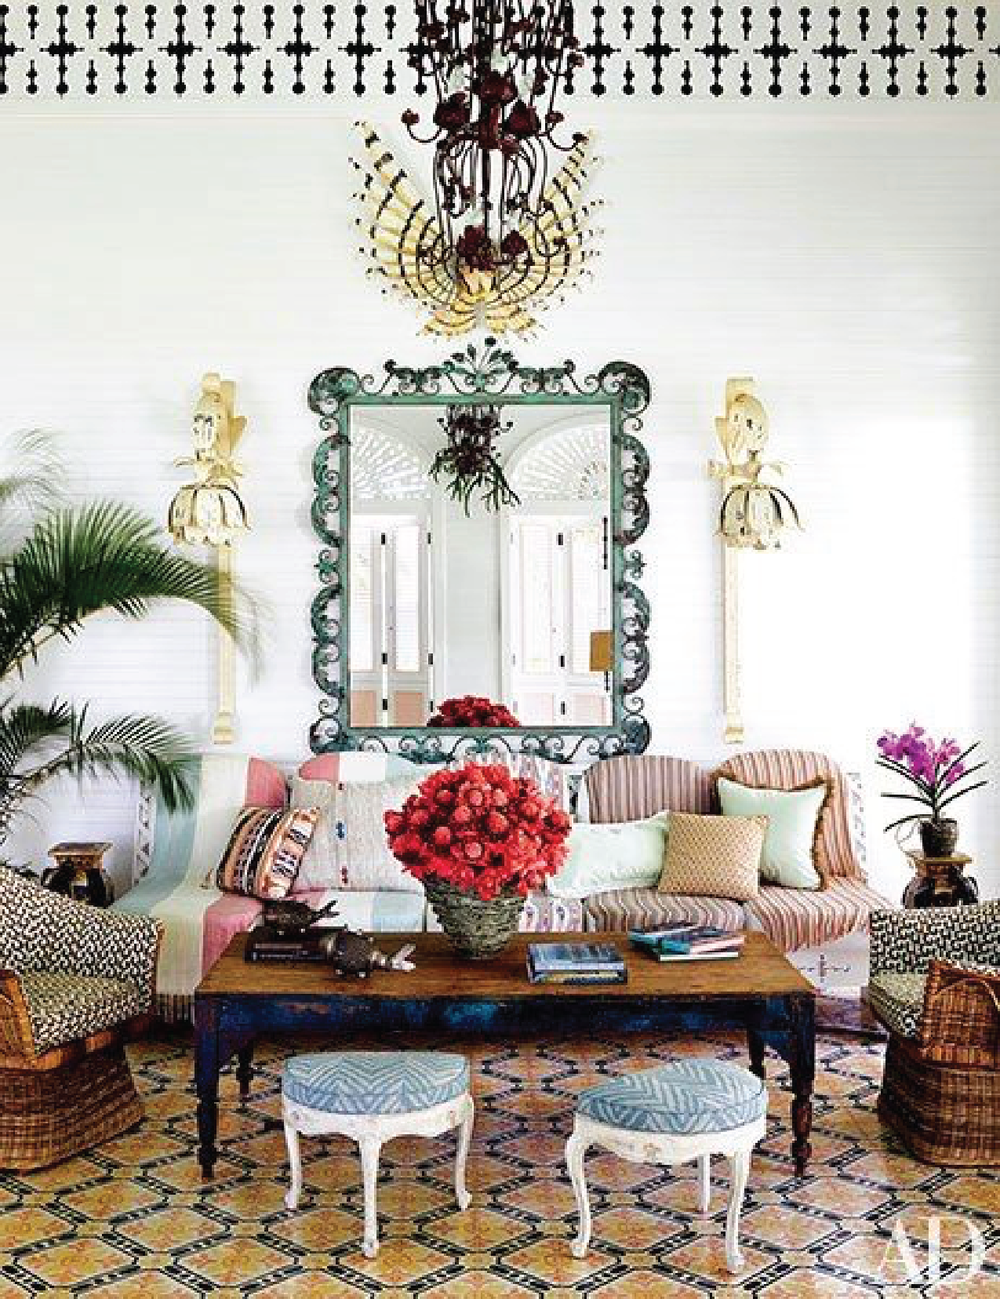 Celerie kemble 's dominican republic compound via  Architectural digest